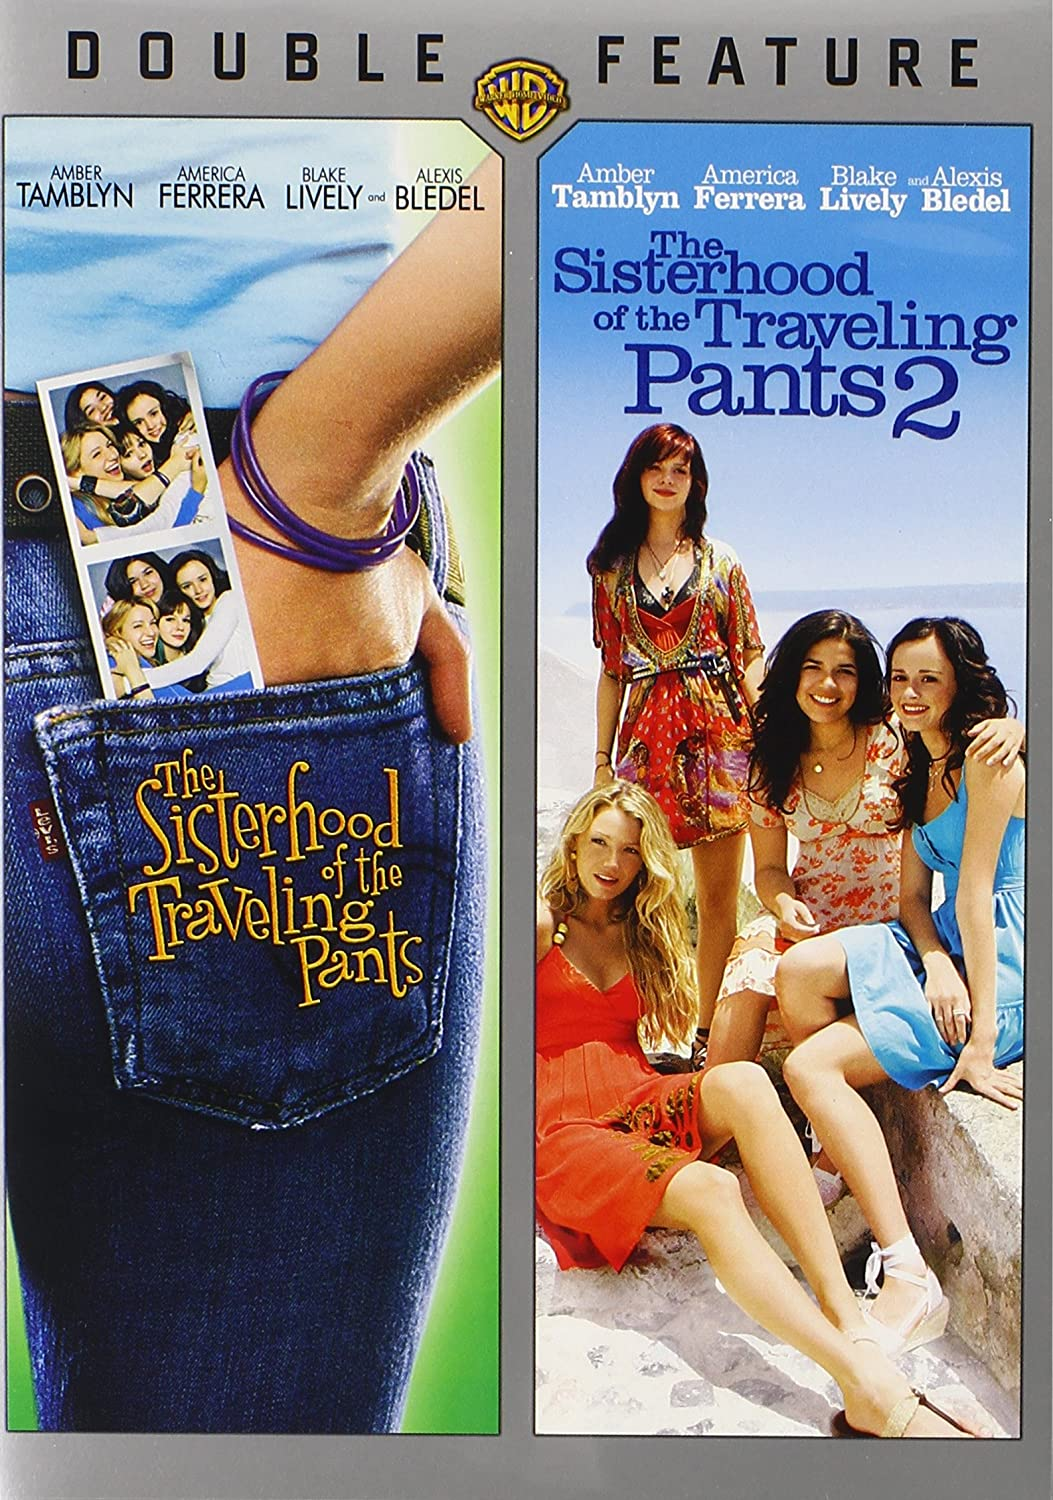 essay on sisterhood of the traveling pants Although the girls form their own close community, when they are in their own  worlds apart from their friends, each struggles with being an outsider in some  way.